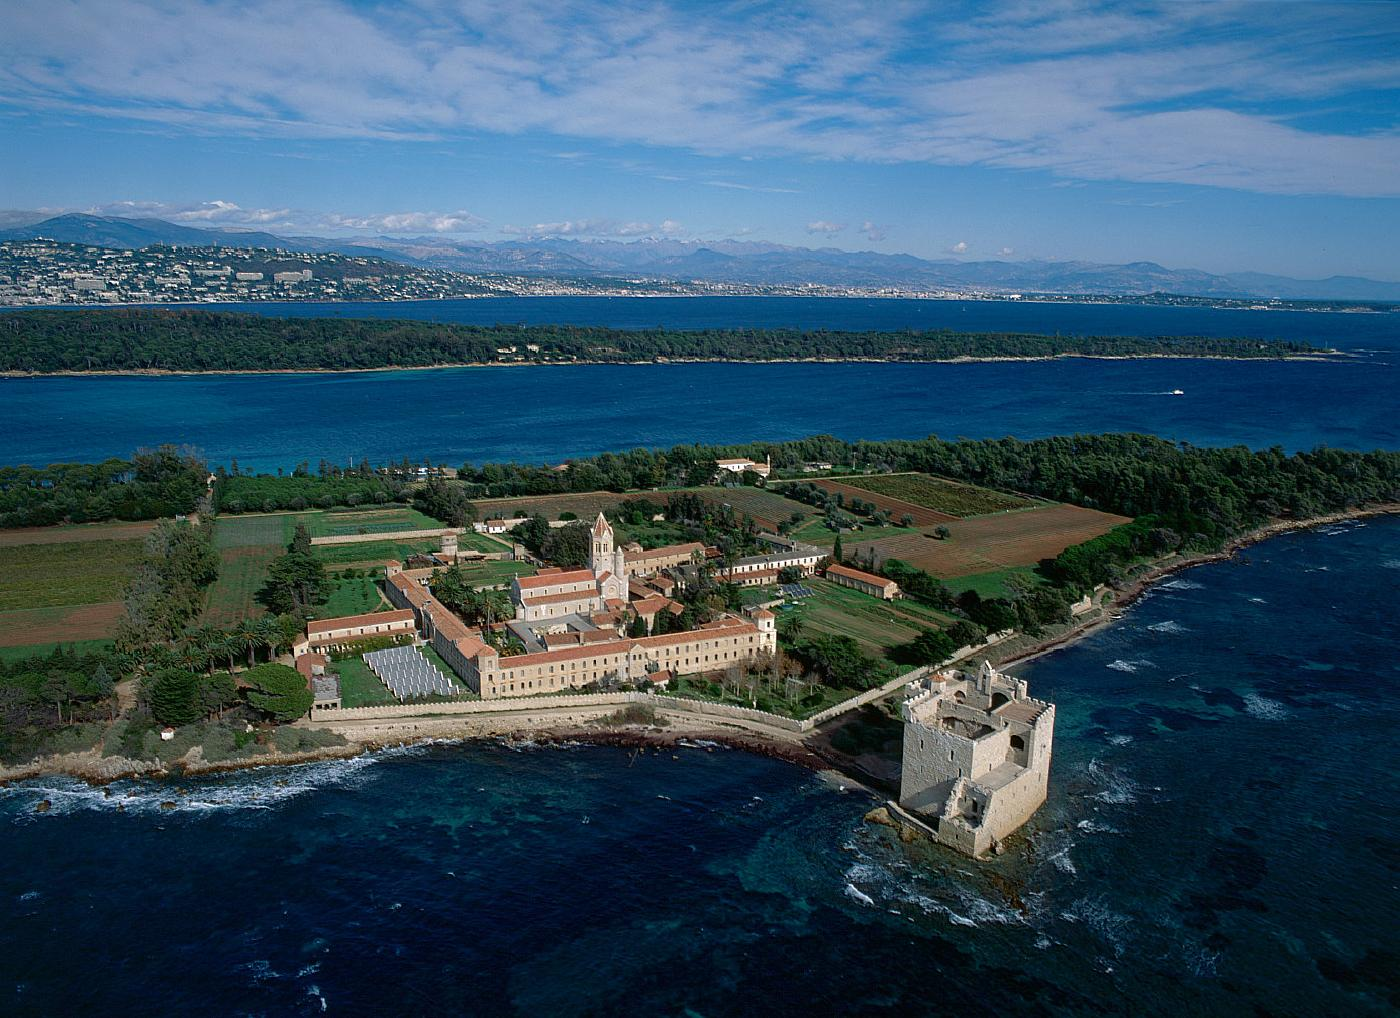 The quiet island of Île Saint-Honorat is home to a fifth-century abbey and wine-making monks